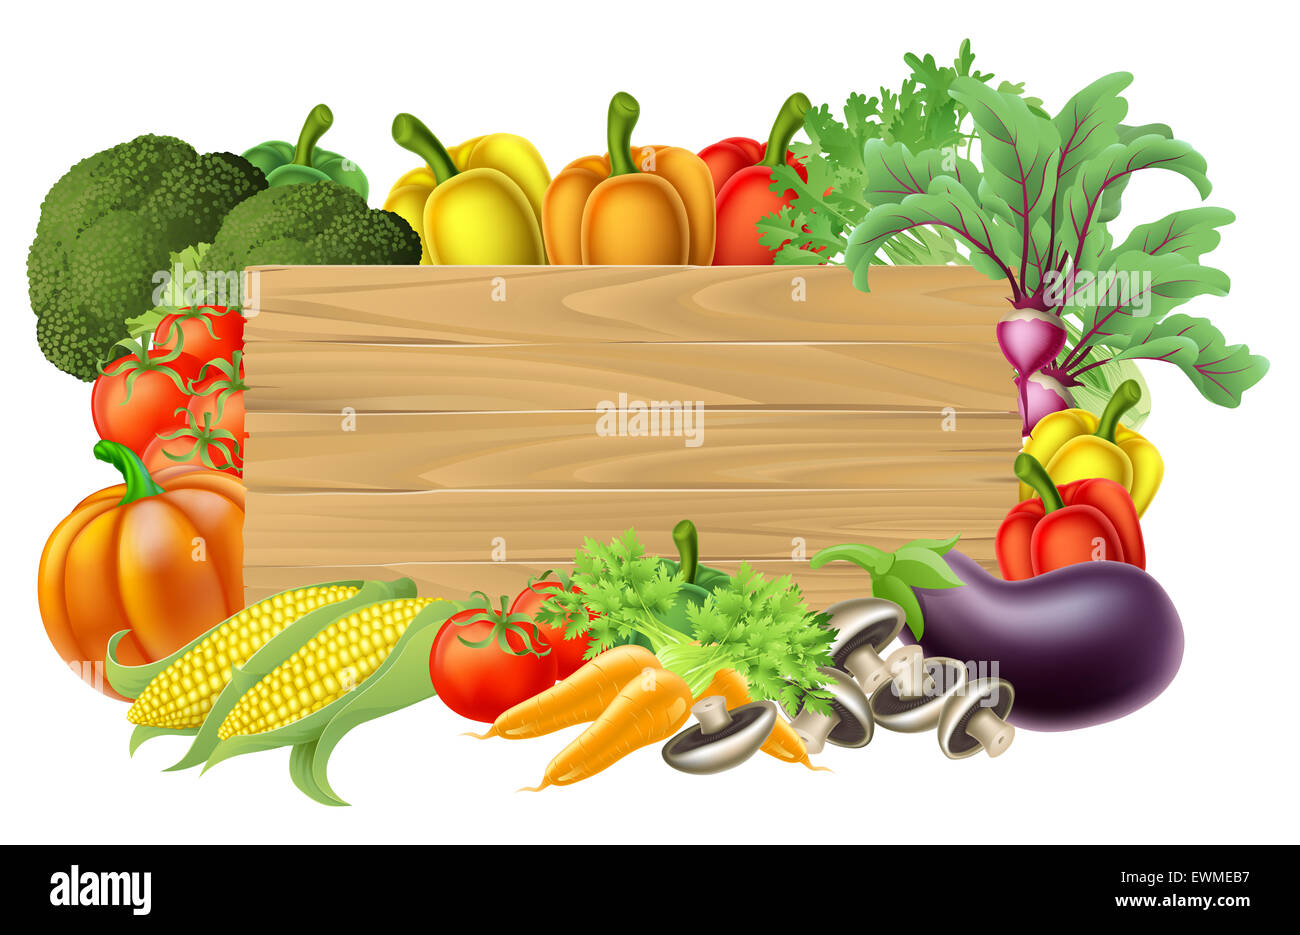 A wooden vegetables sign background surrounded by a border ...